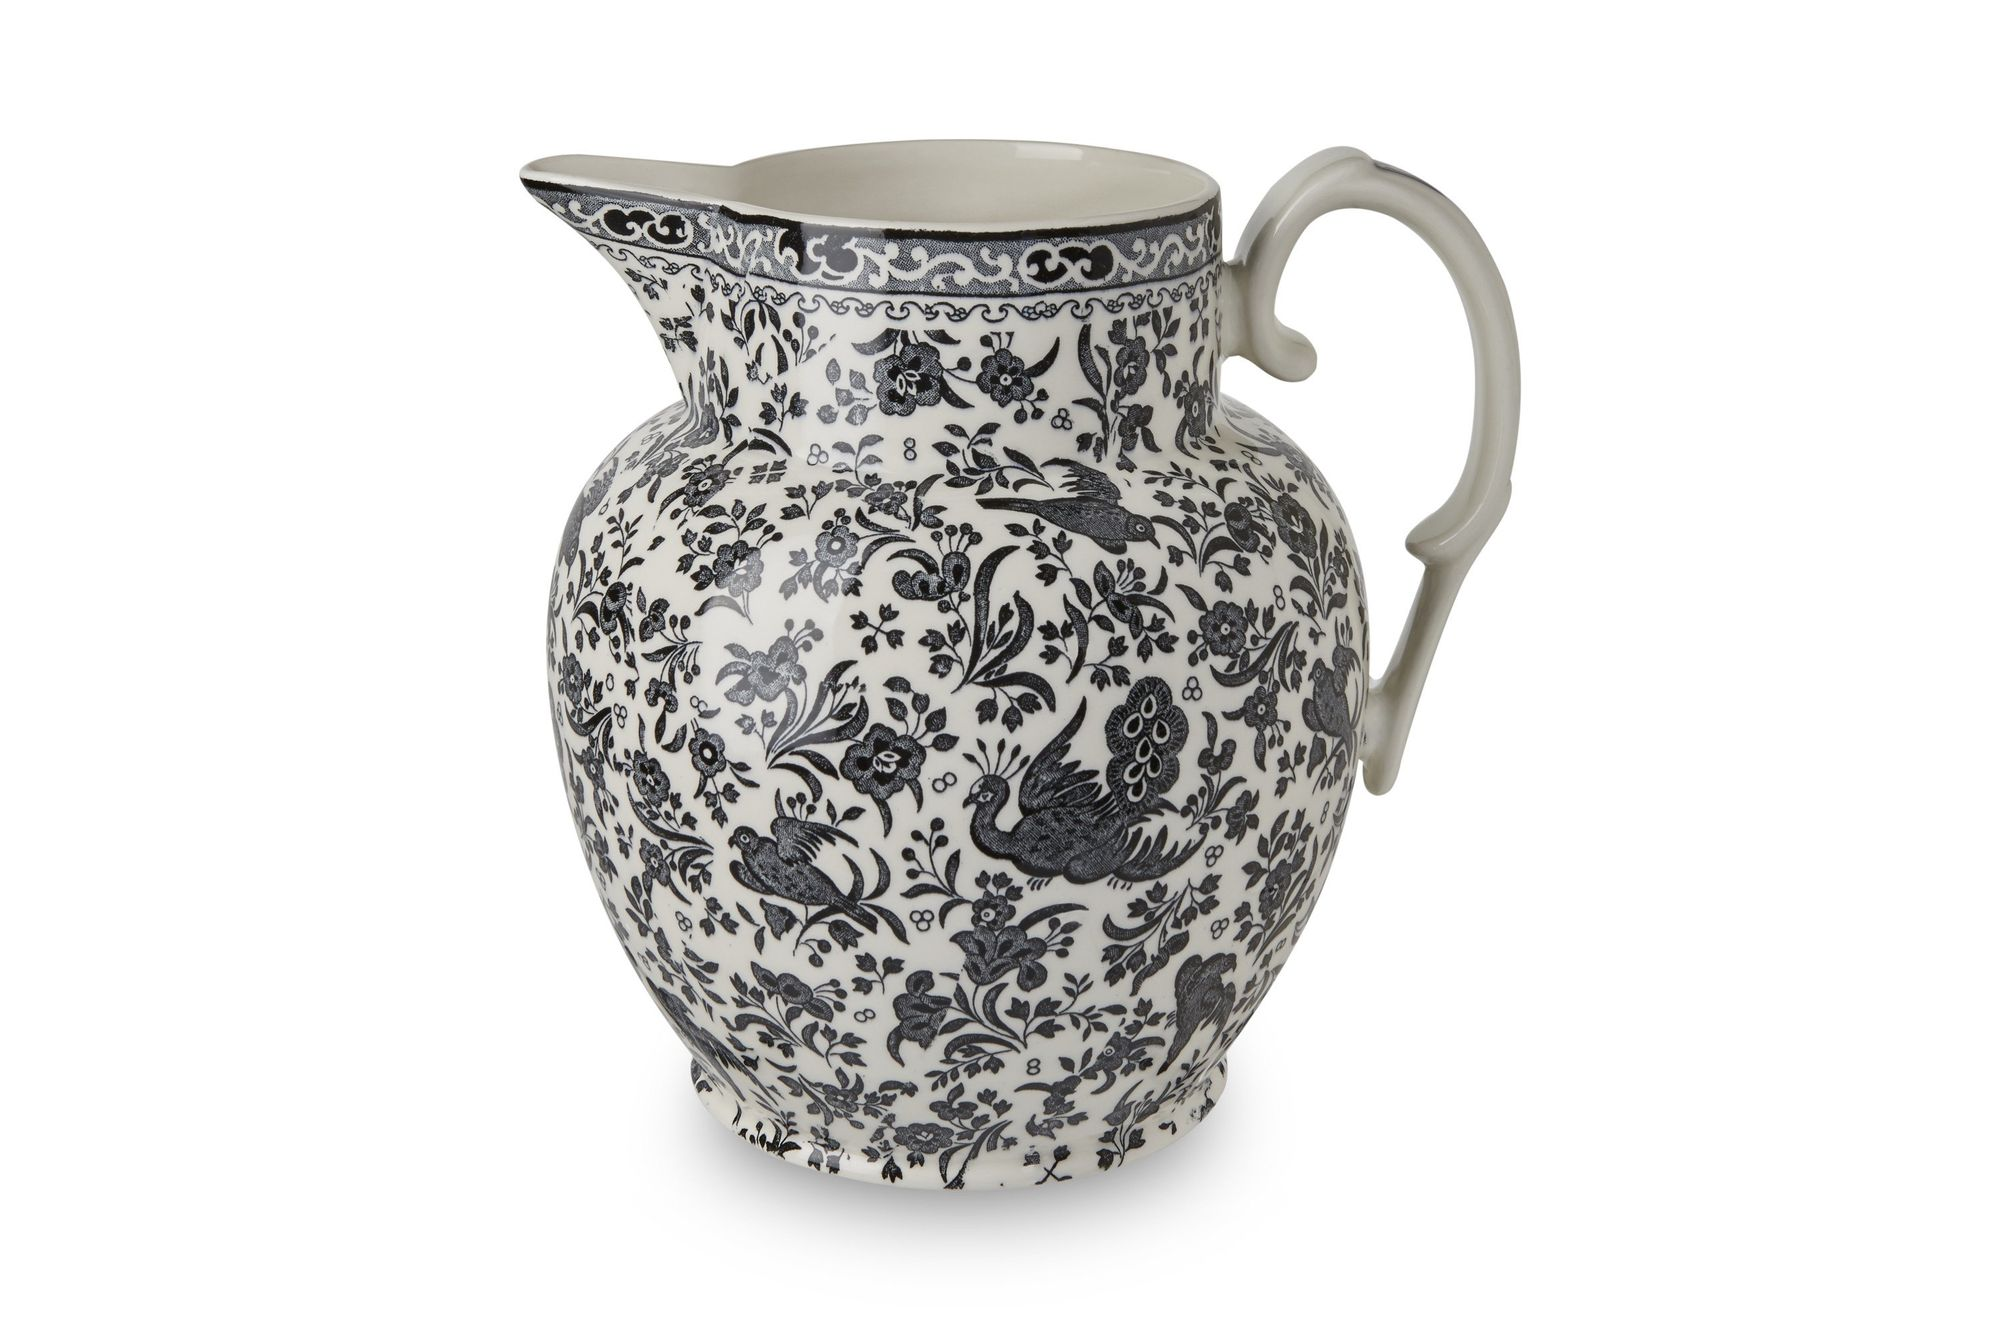 Burleigh Black Regal Peacock Jug Etruscan Jug thumb 2